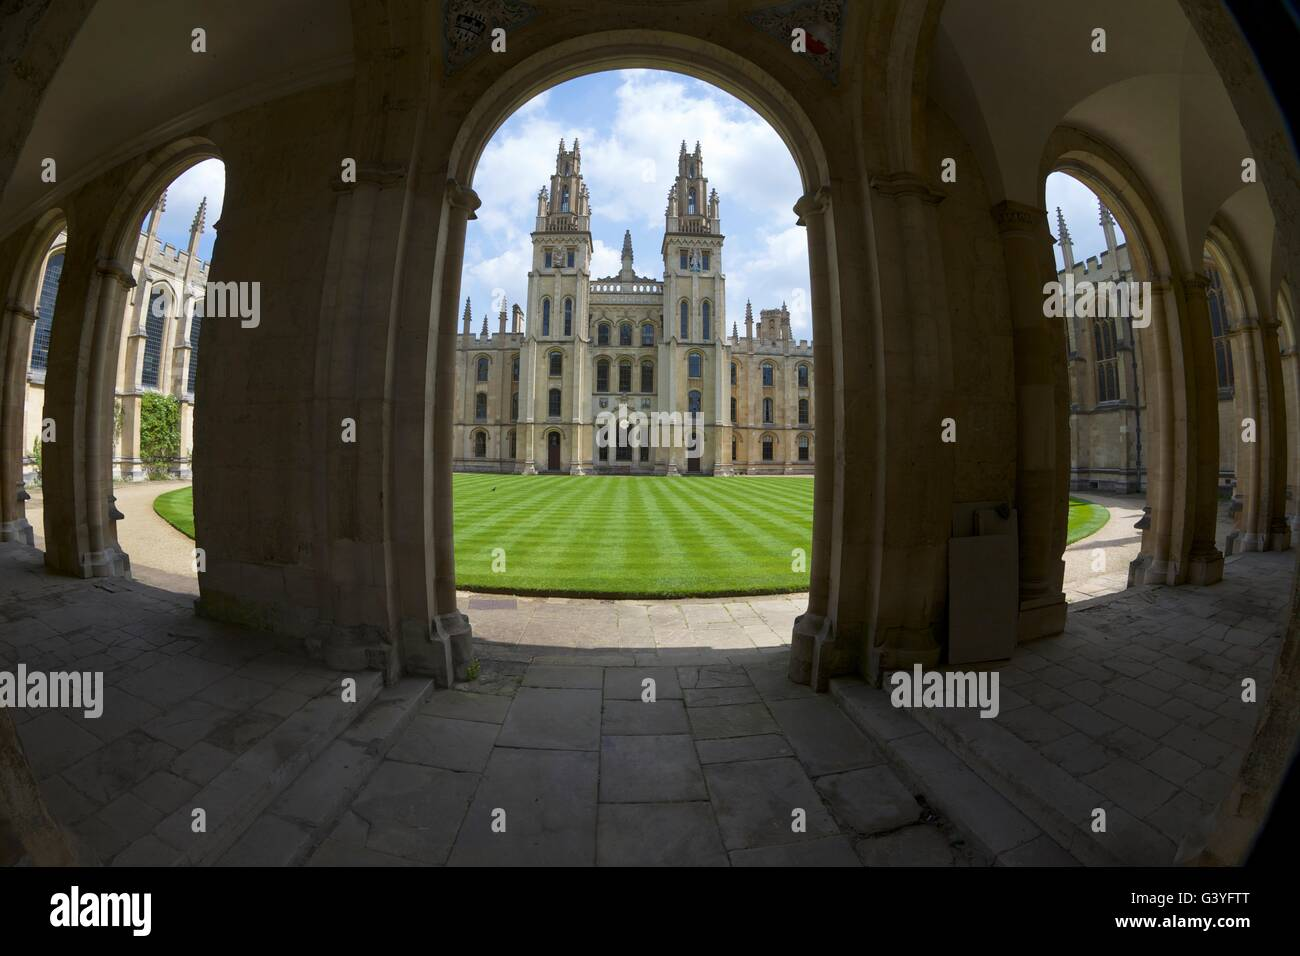 All Souls College, Oxford University Campus, Oxfordshire, England, United Kingdom, Europe - Stock Image